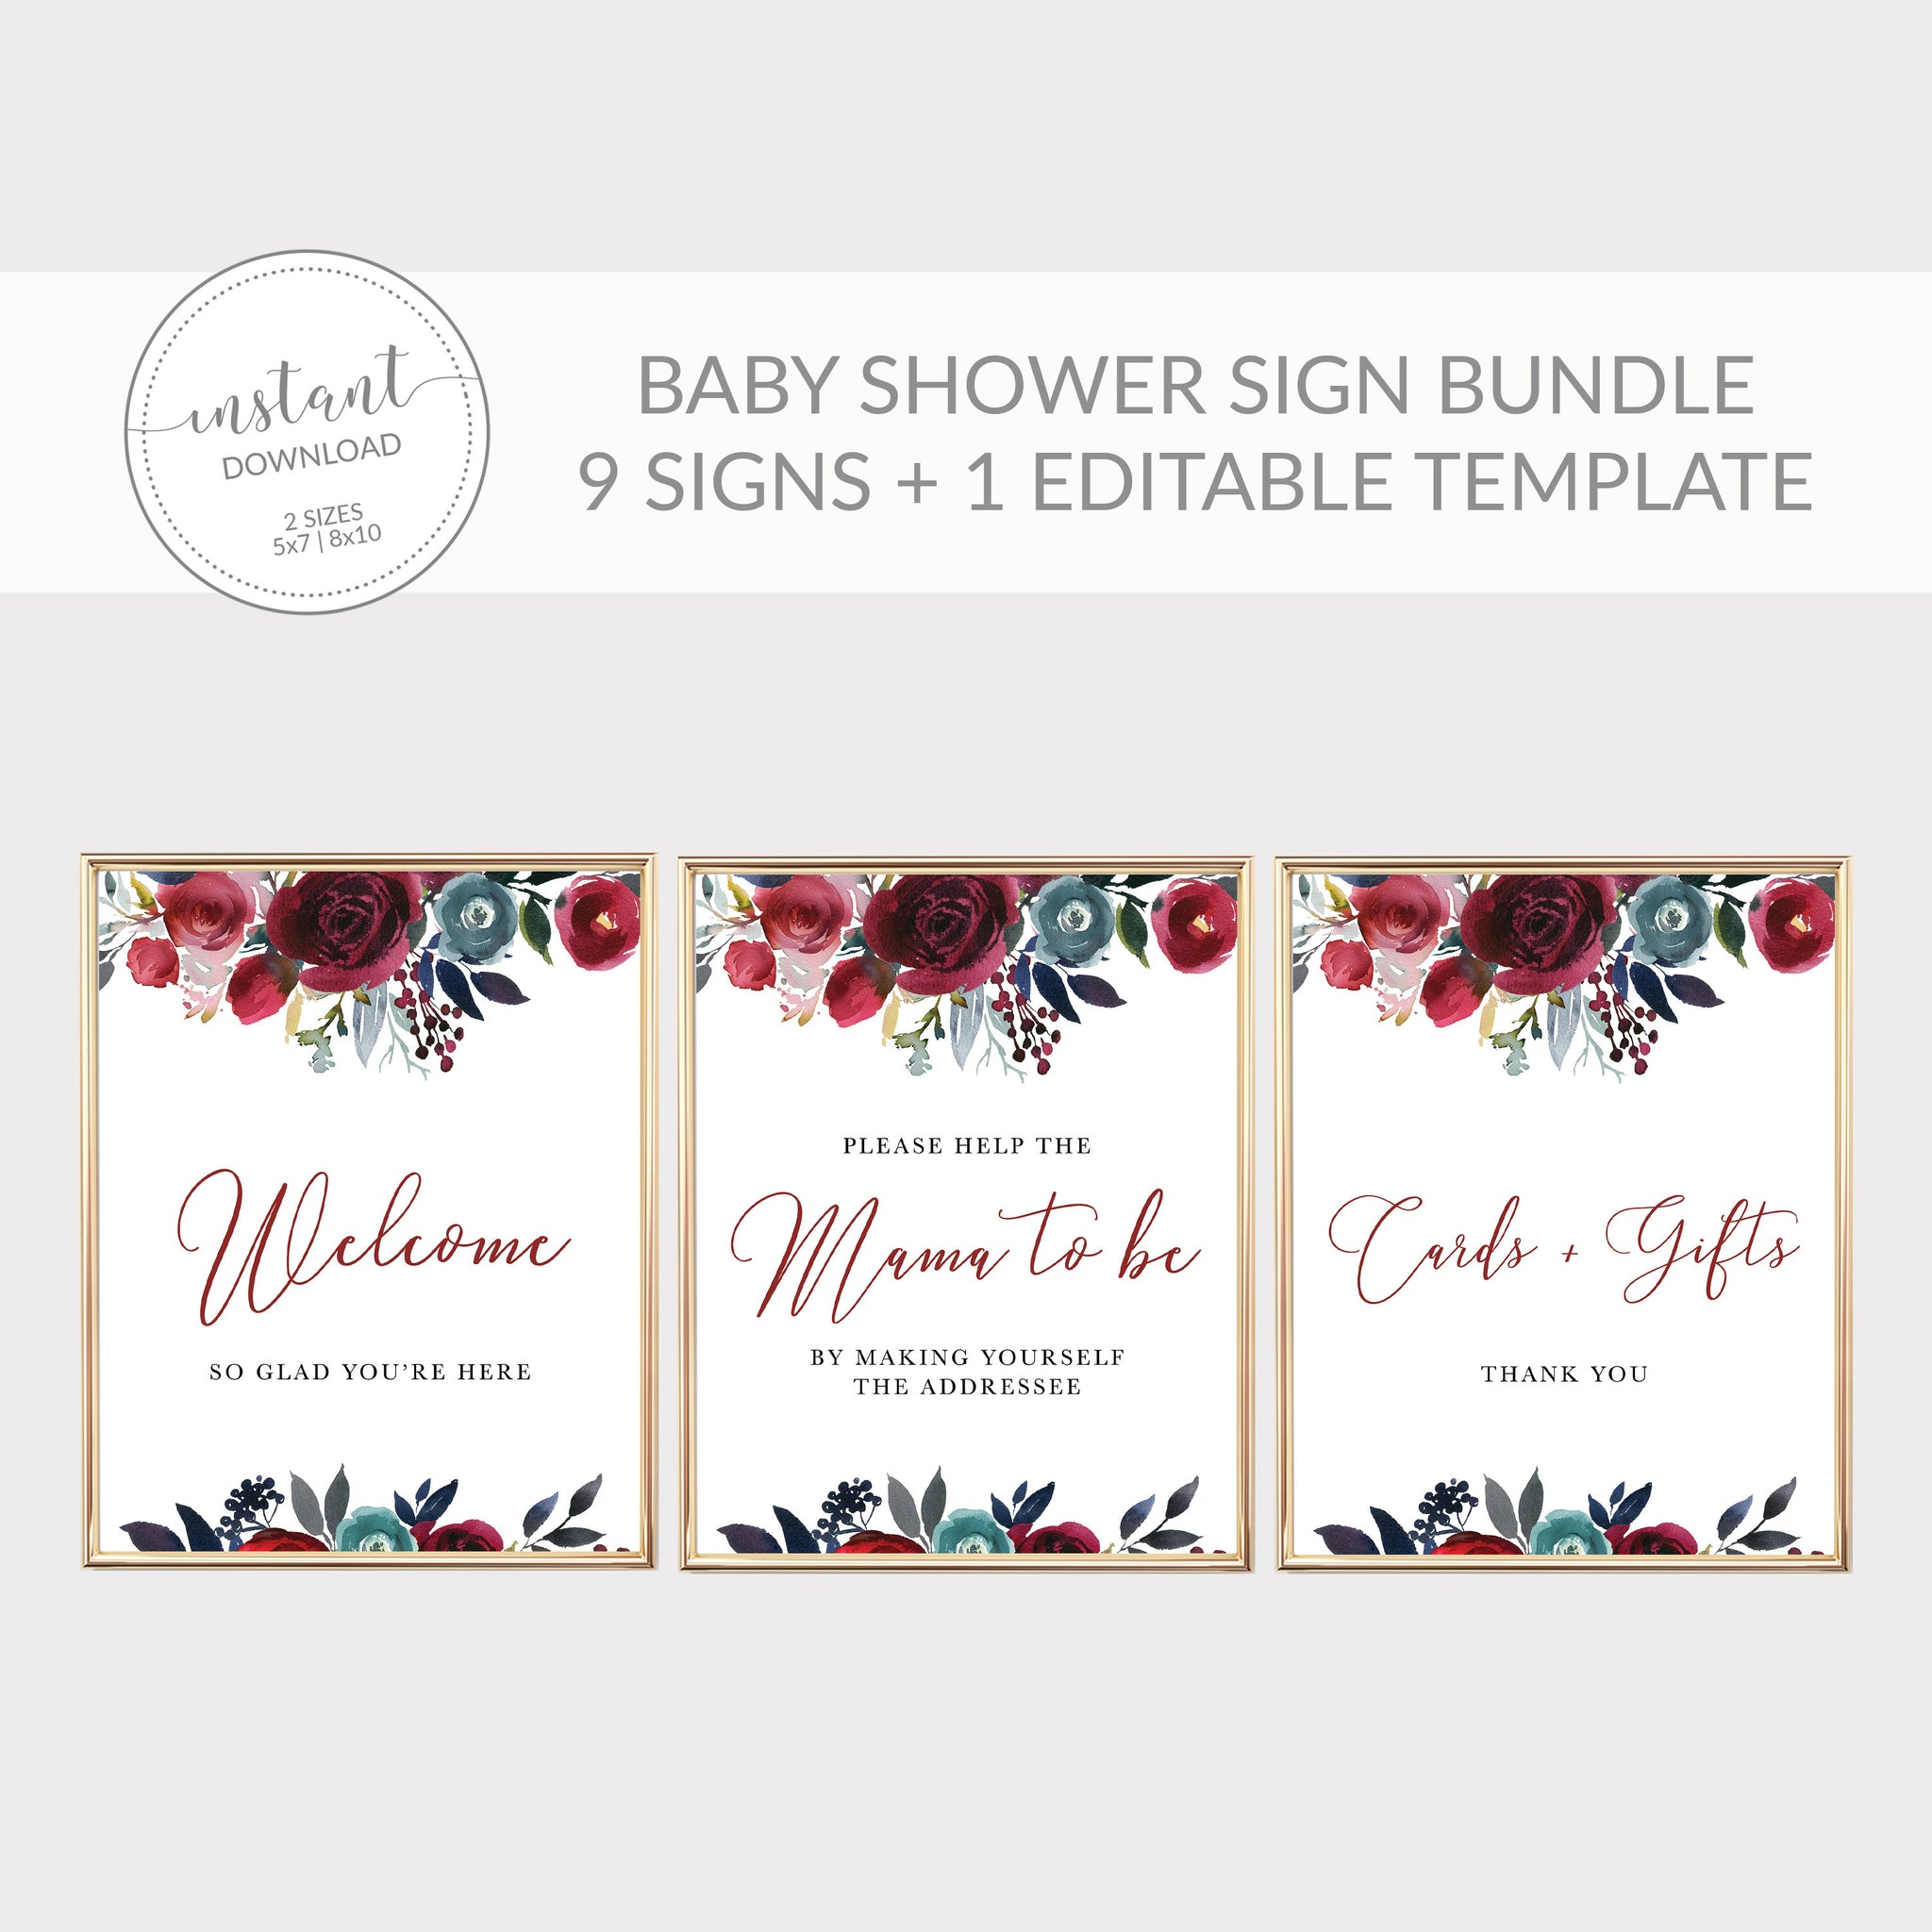 Burgundy and Navy Baby Shower Decorations, Burgundy Baby Shower Sign Bundle, Editable Baby Shower Template, DIGITAL DOWNLOAD - BB100